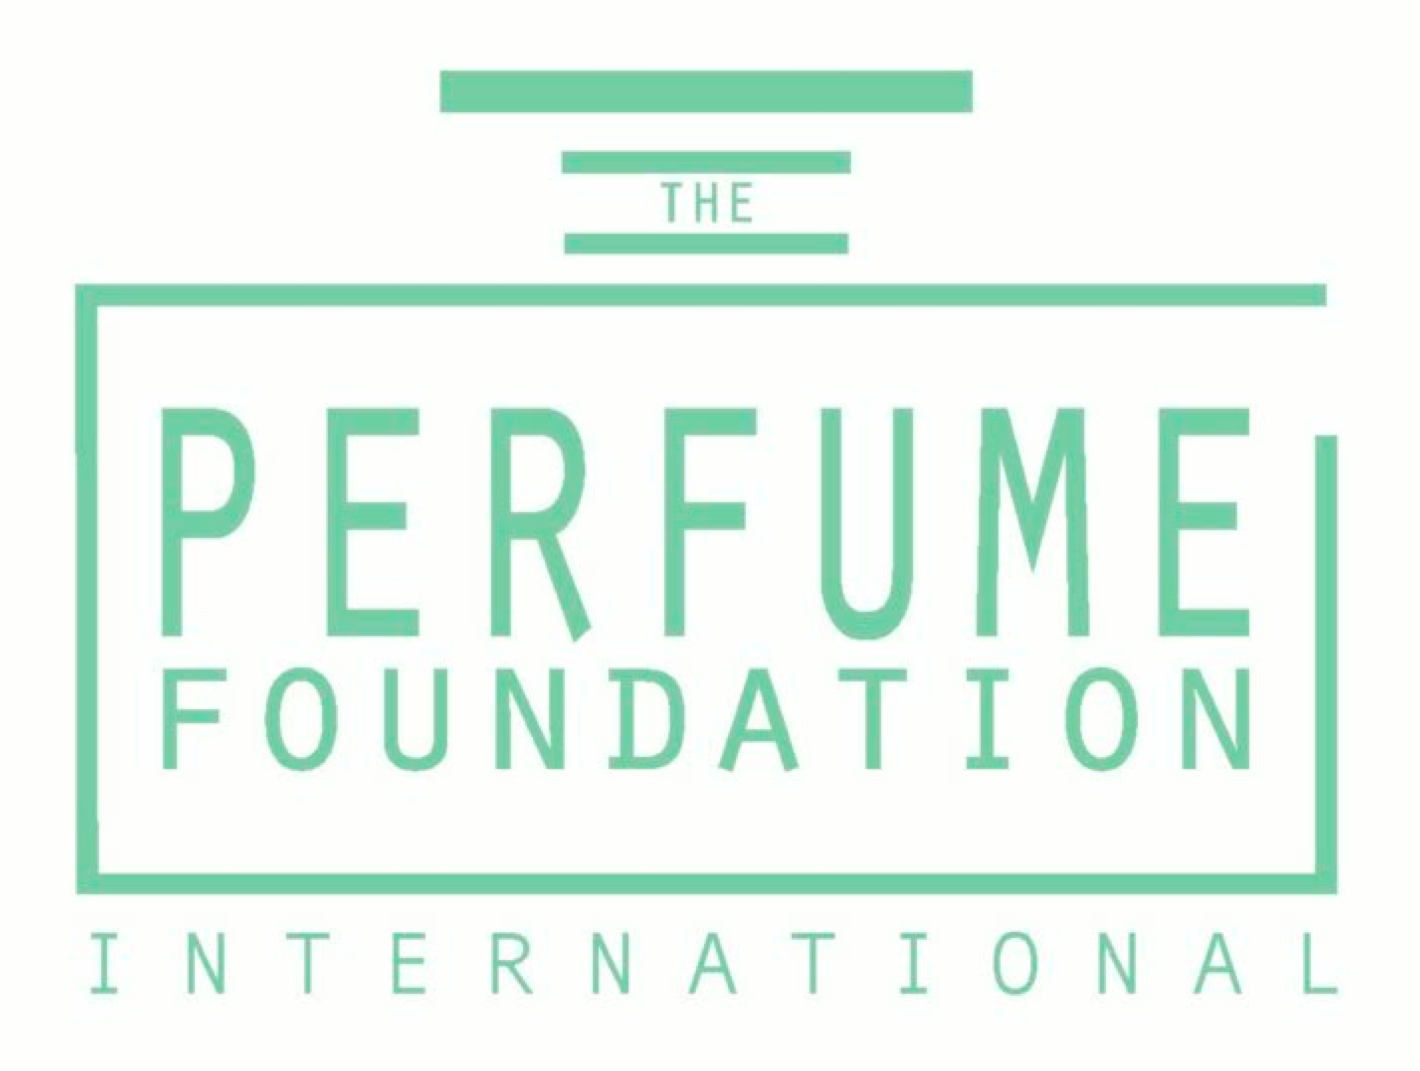 Member of the International Perfume Foundation